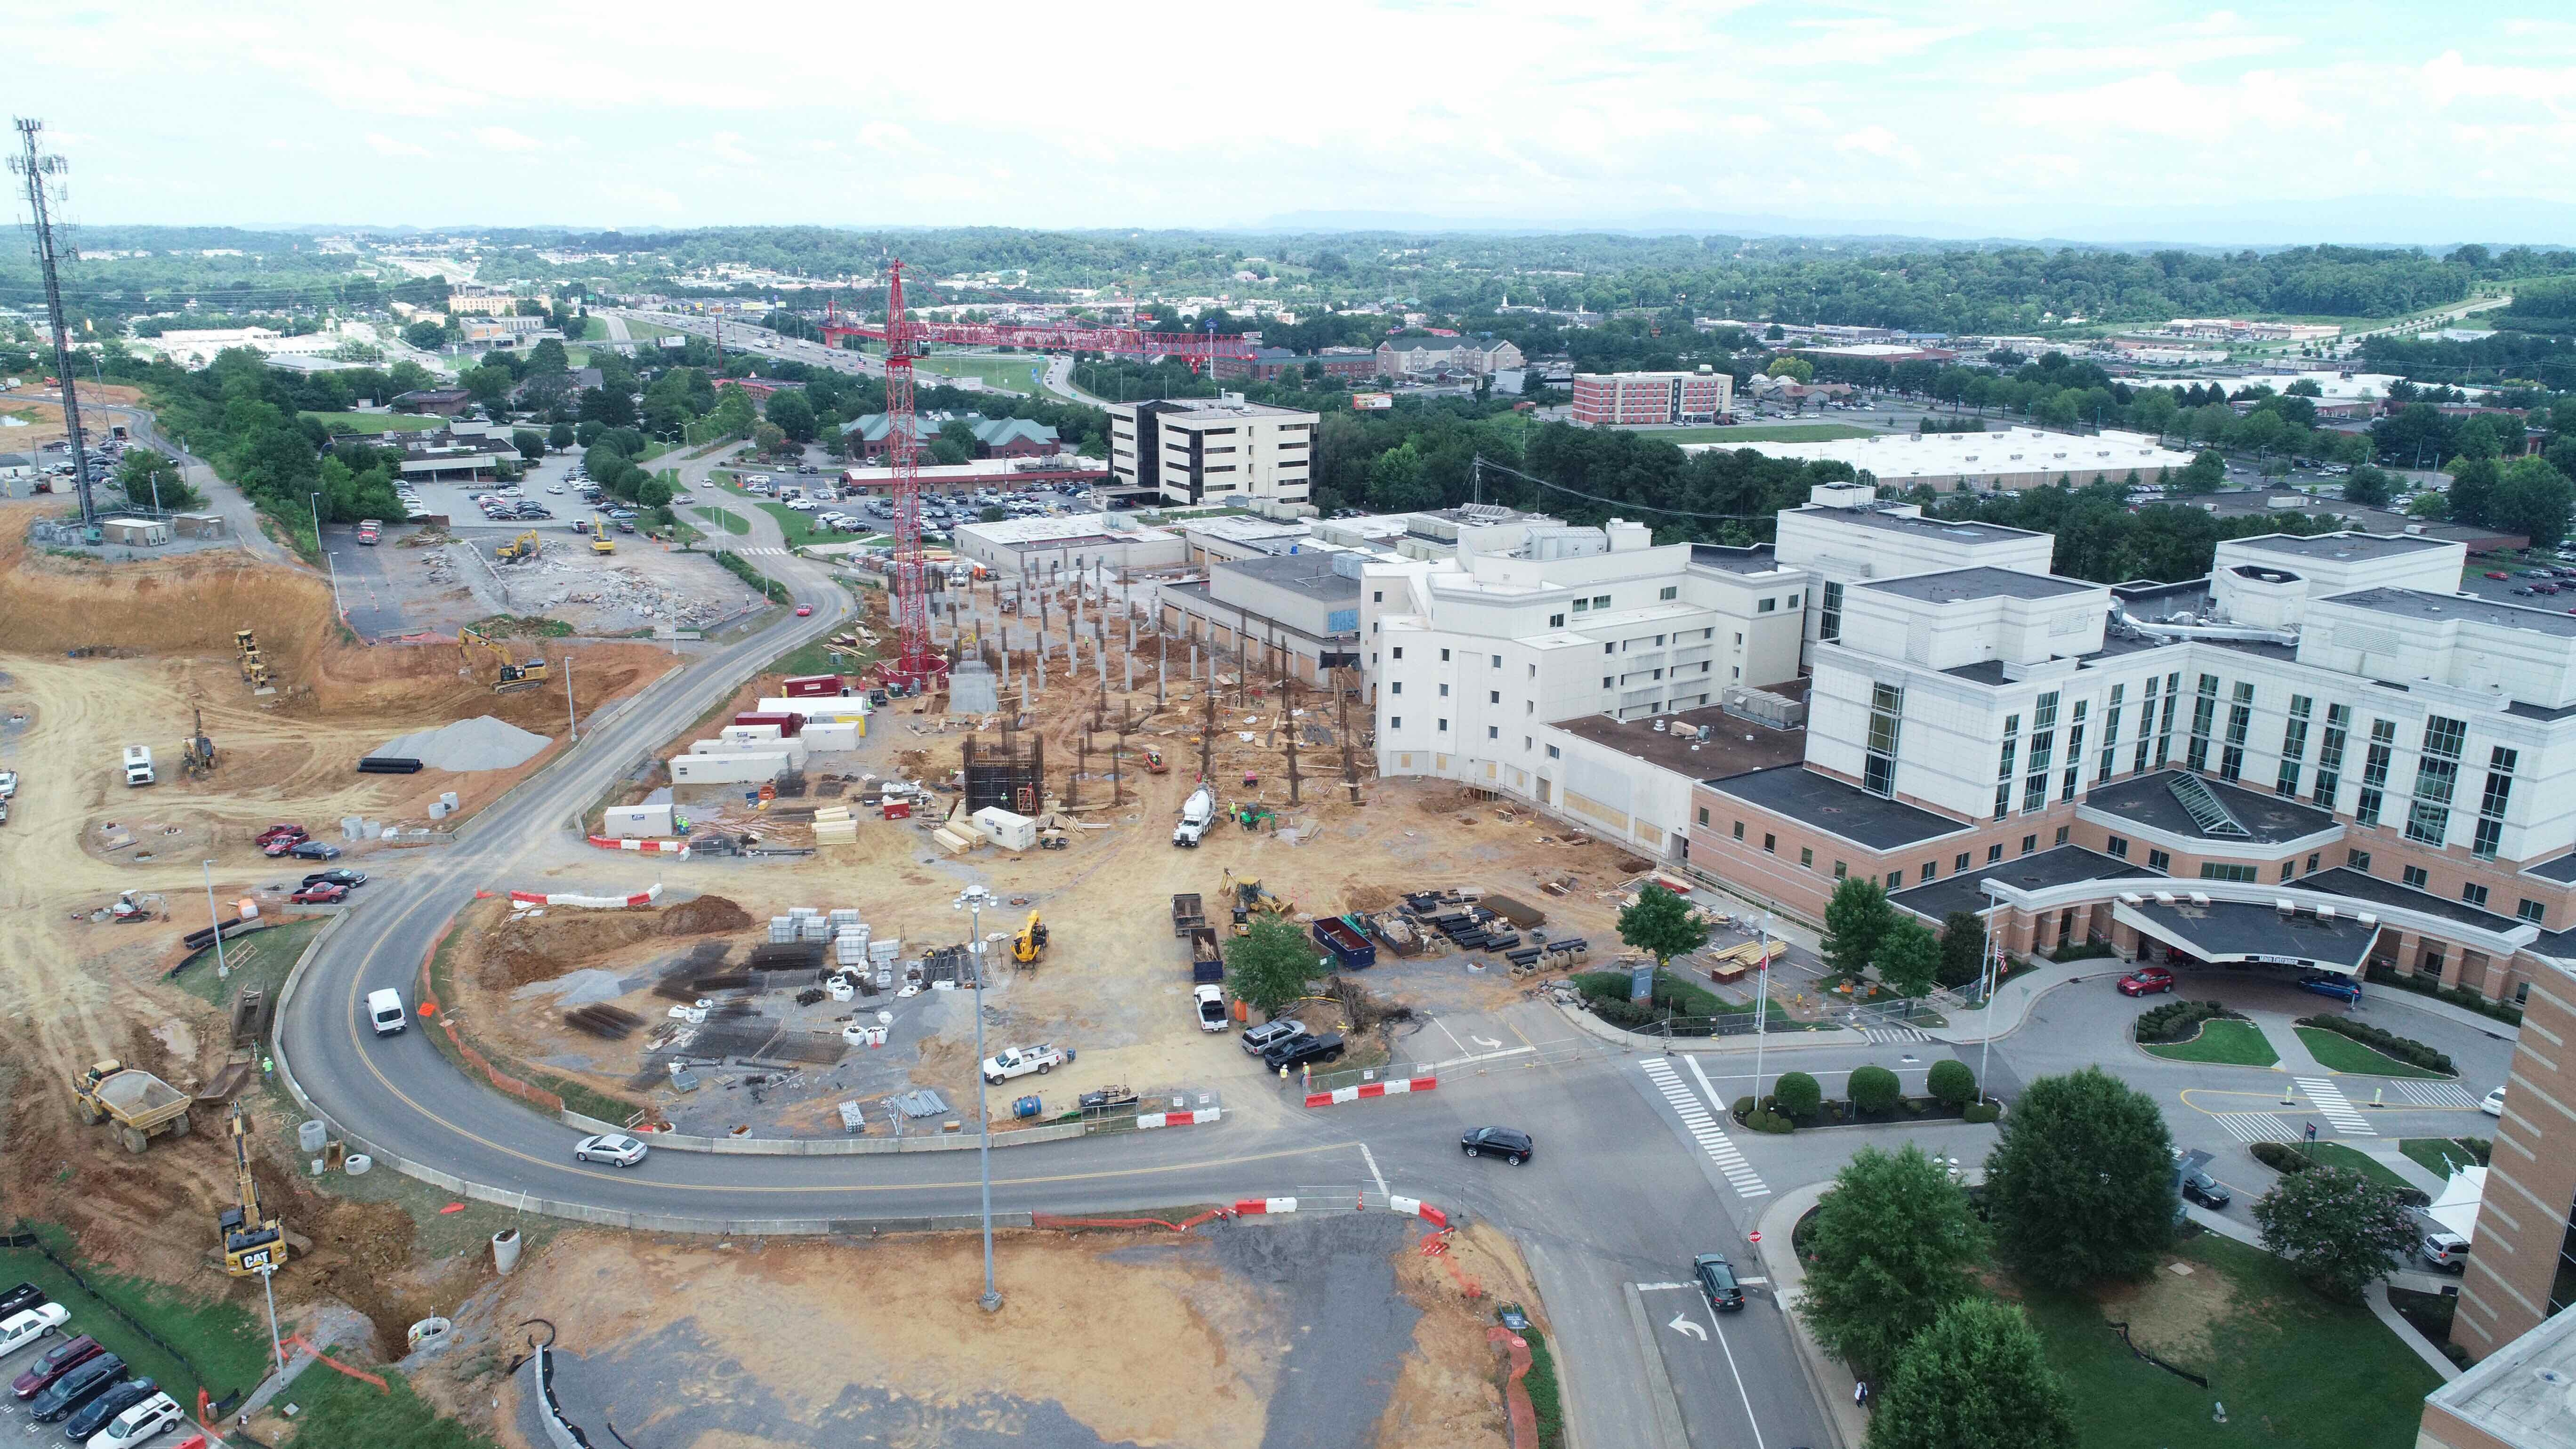 July progress showing pylons on soon-to-be construction site.